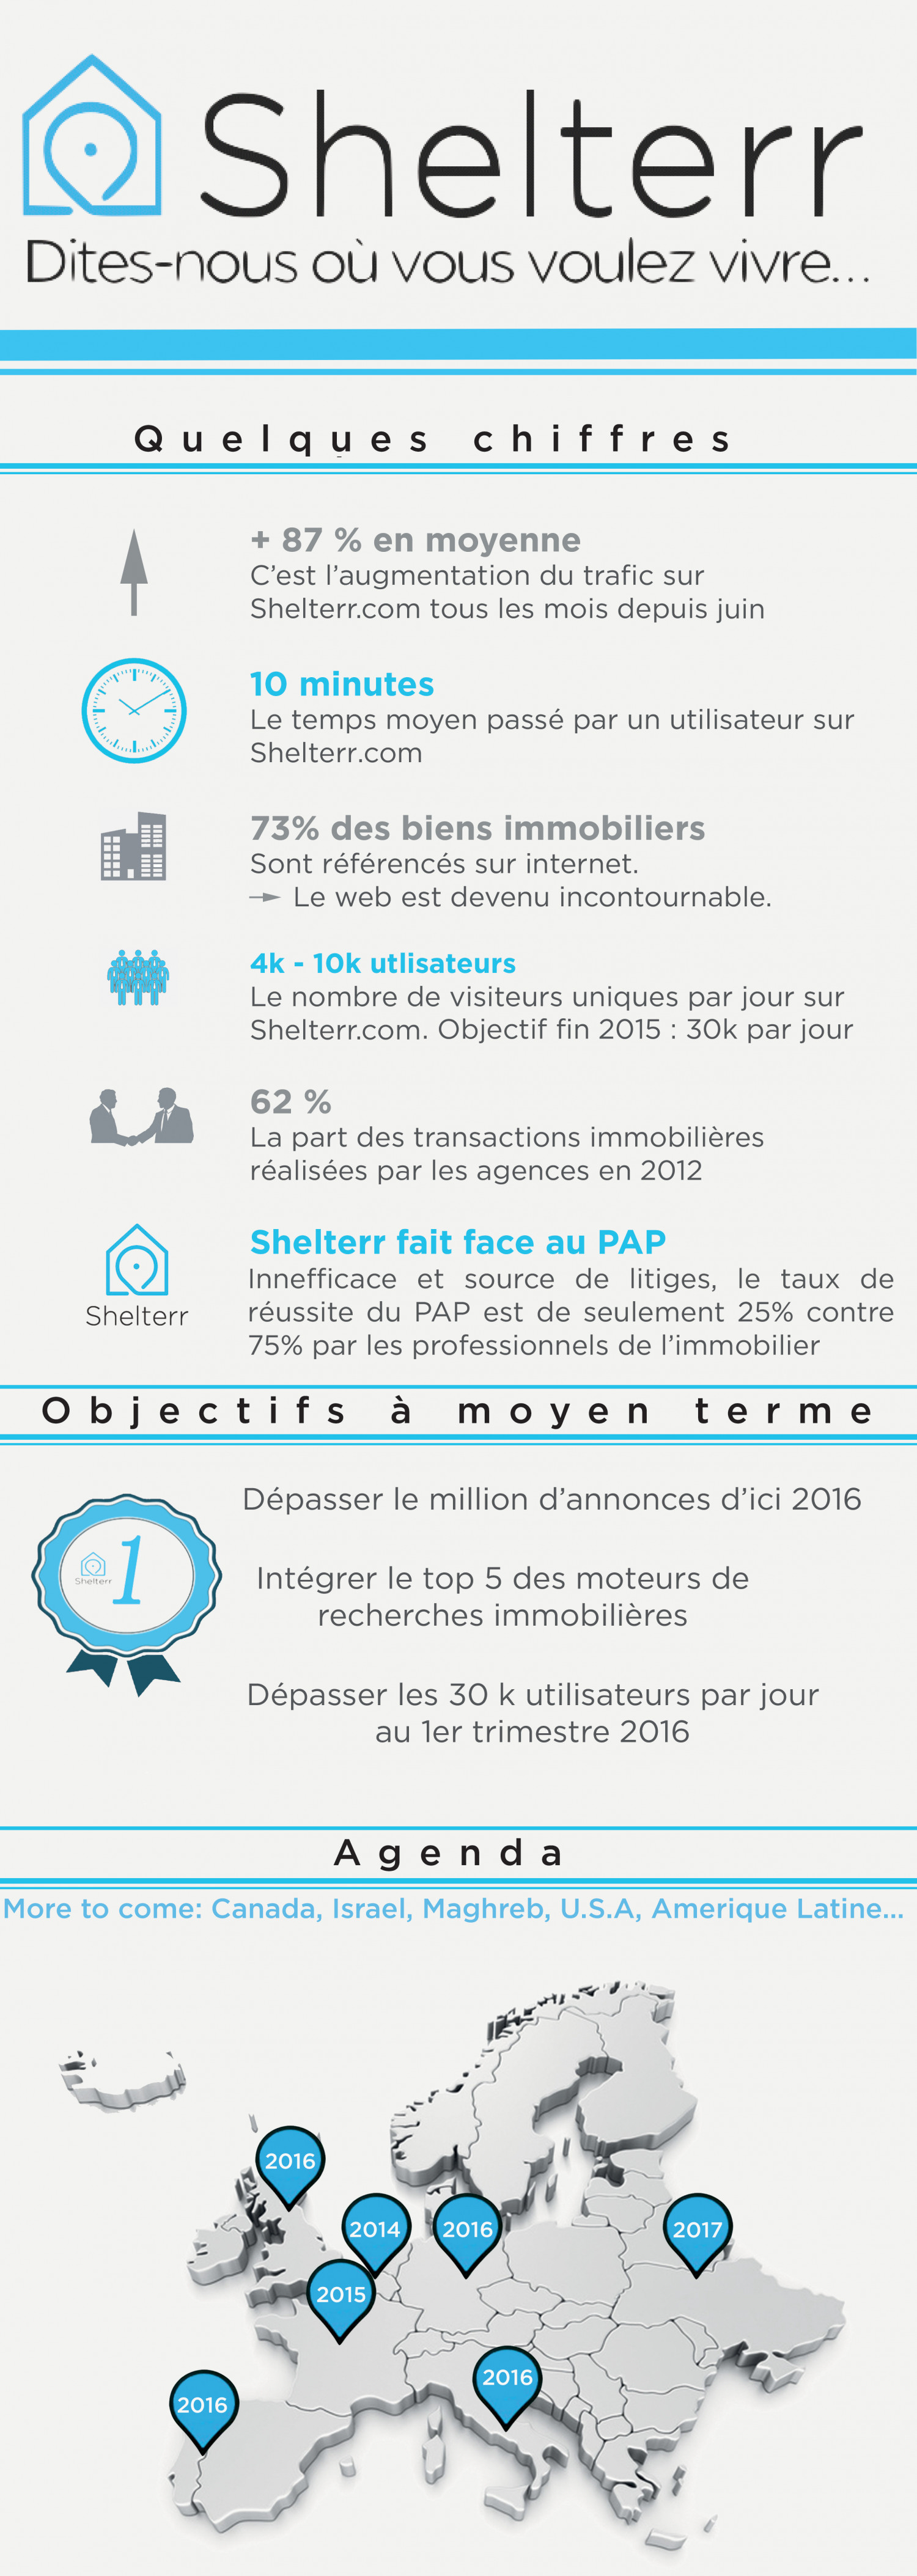 Shelterr Infographic